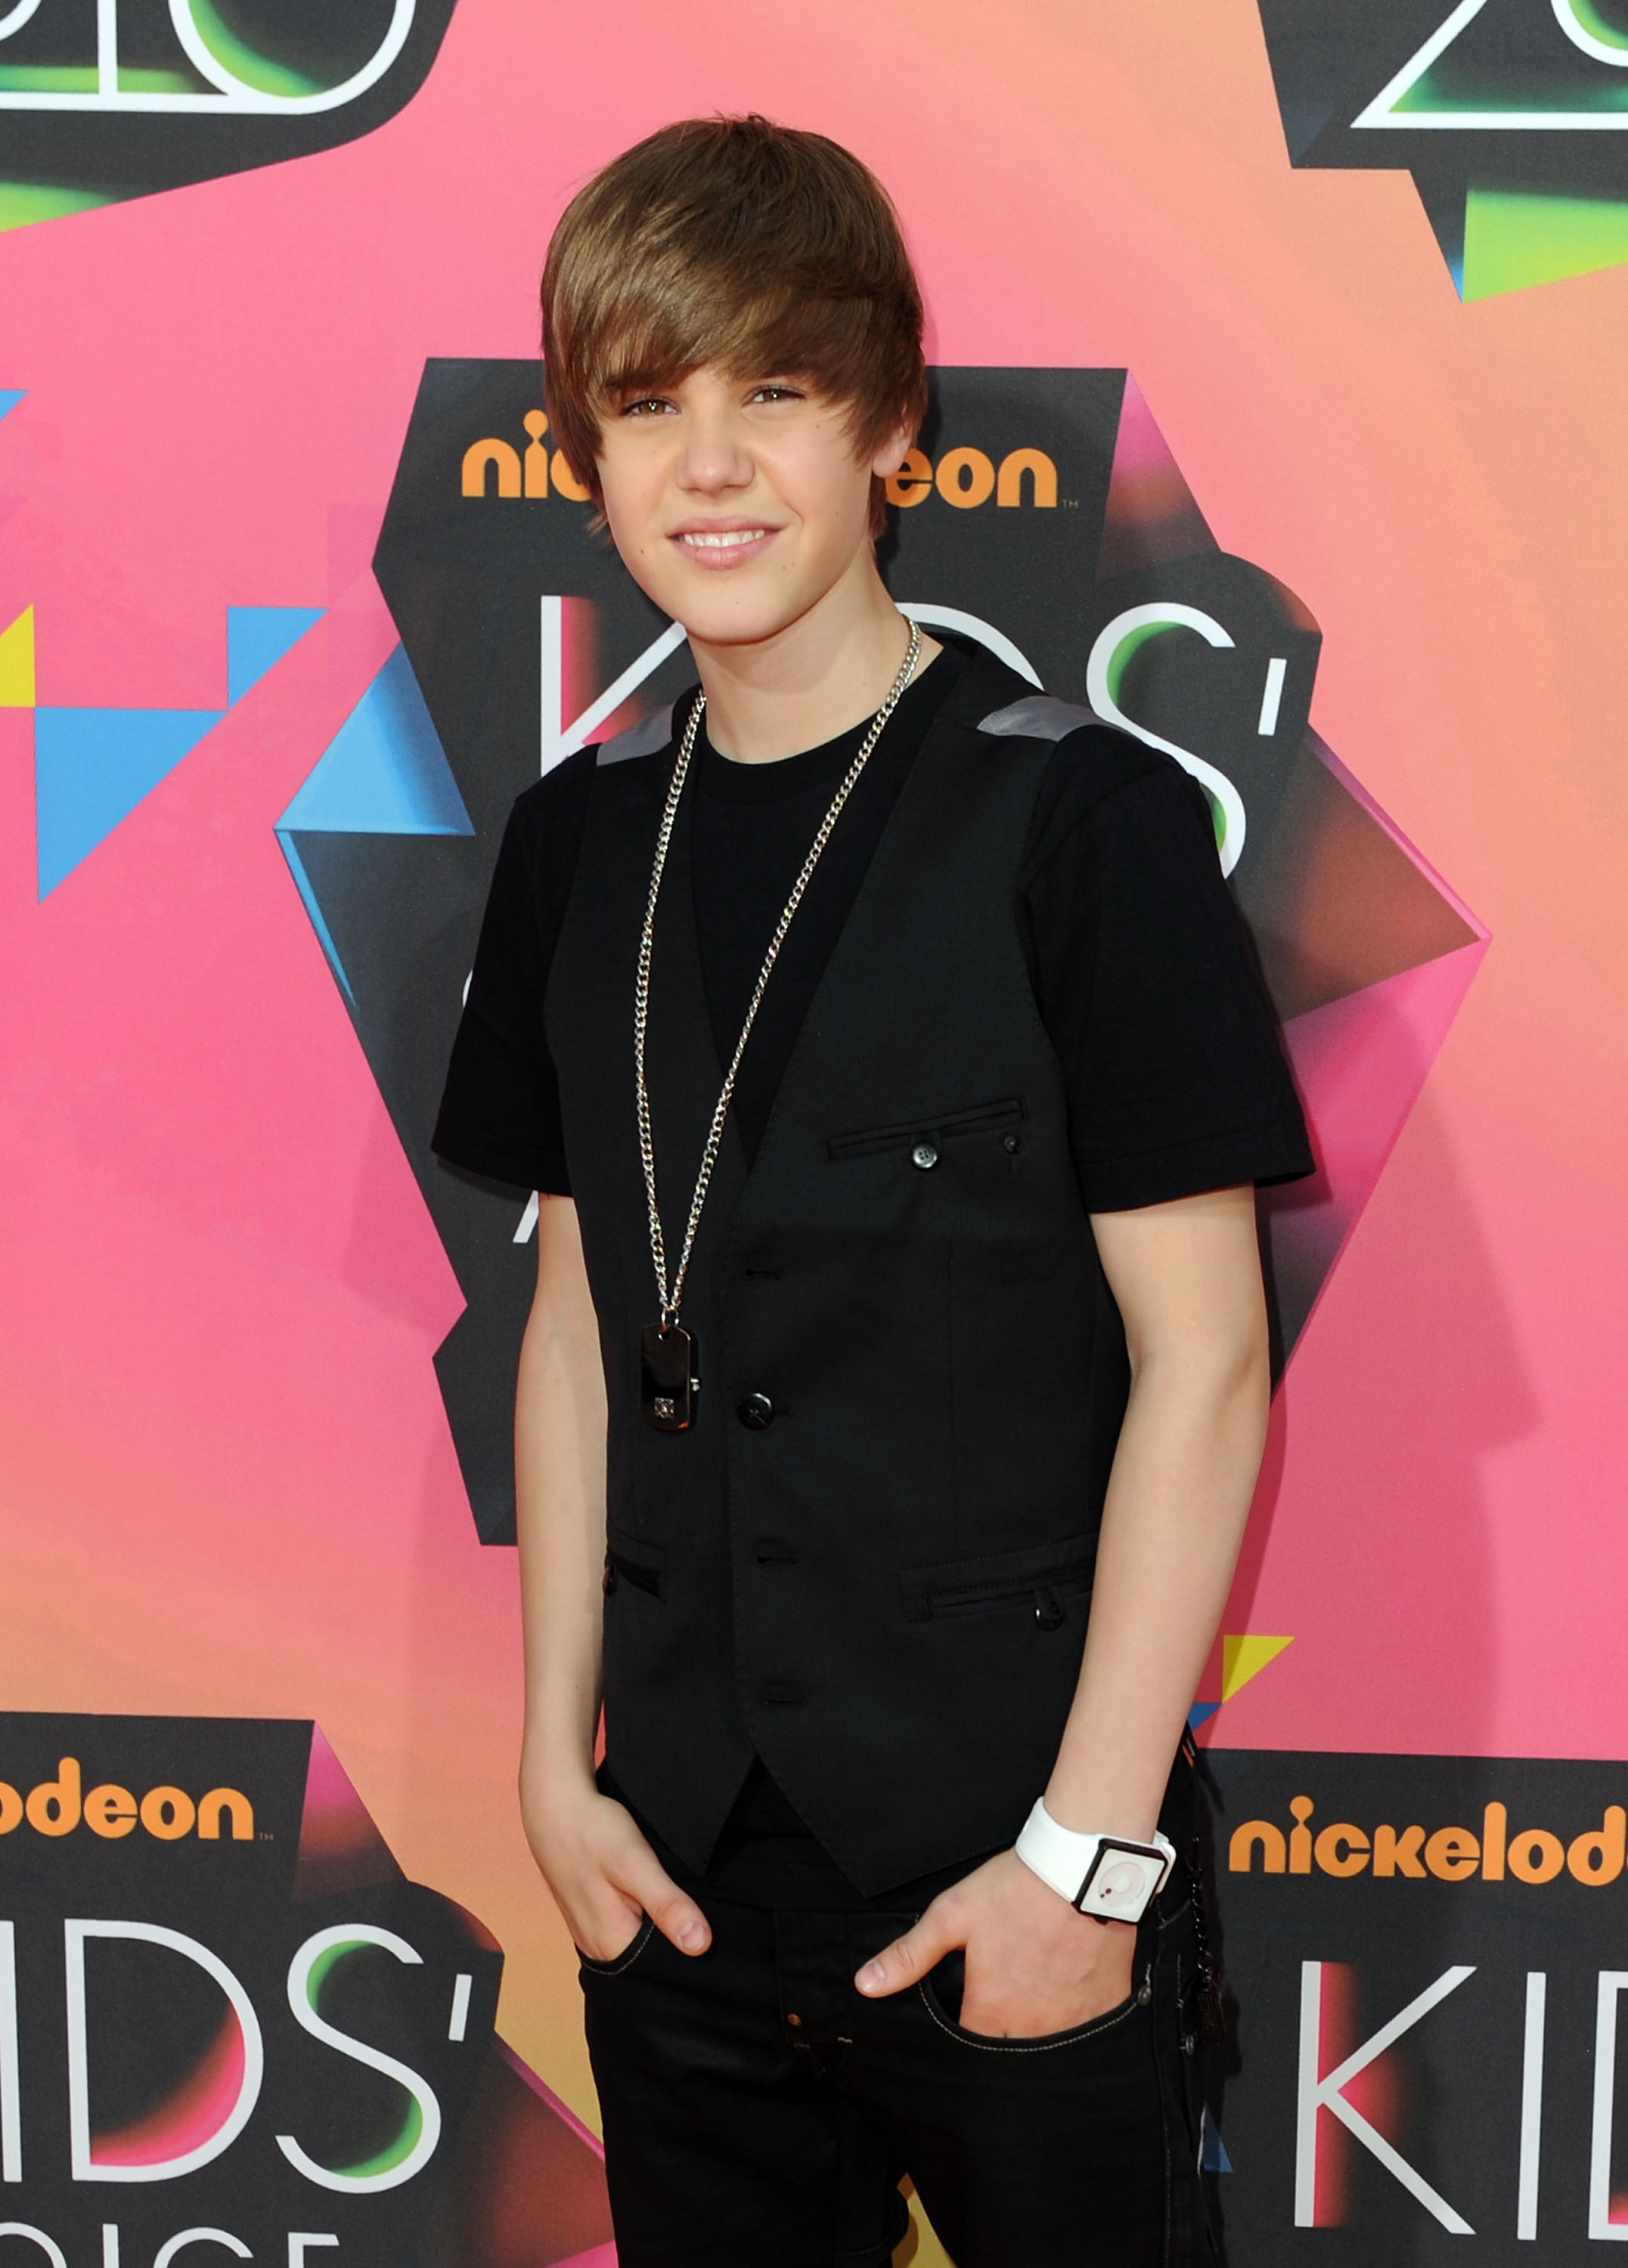 Justin Bieber: The Early Years | Access Online